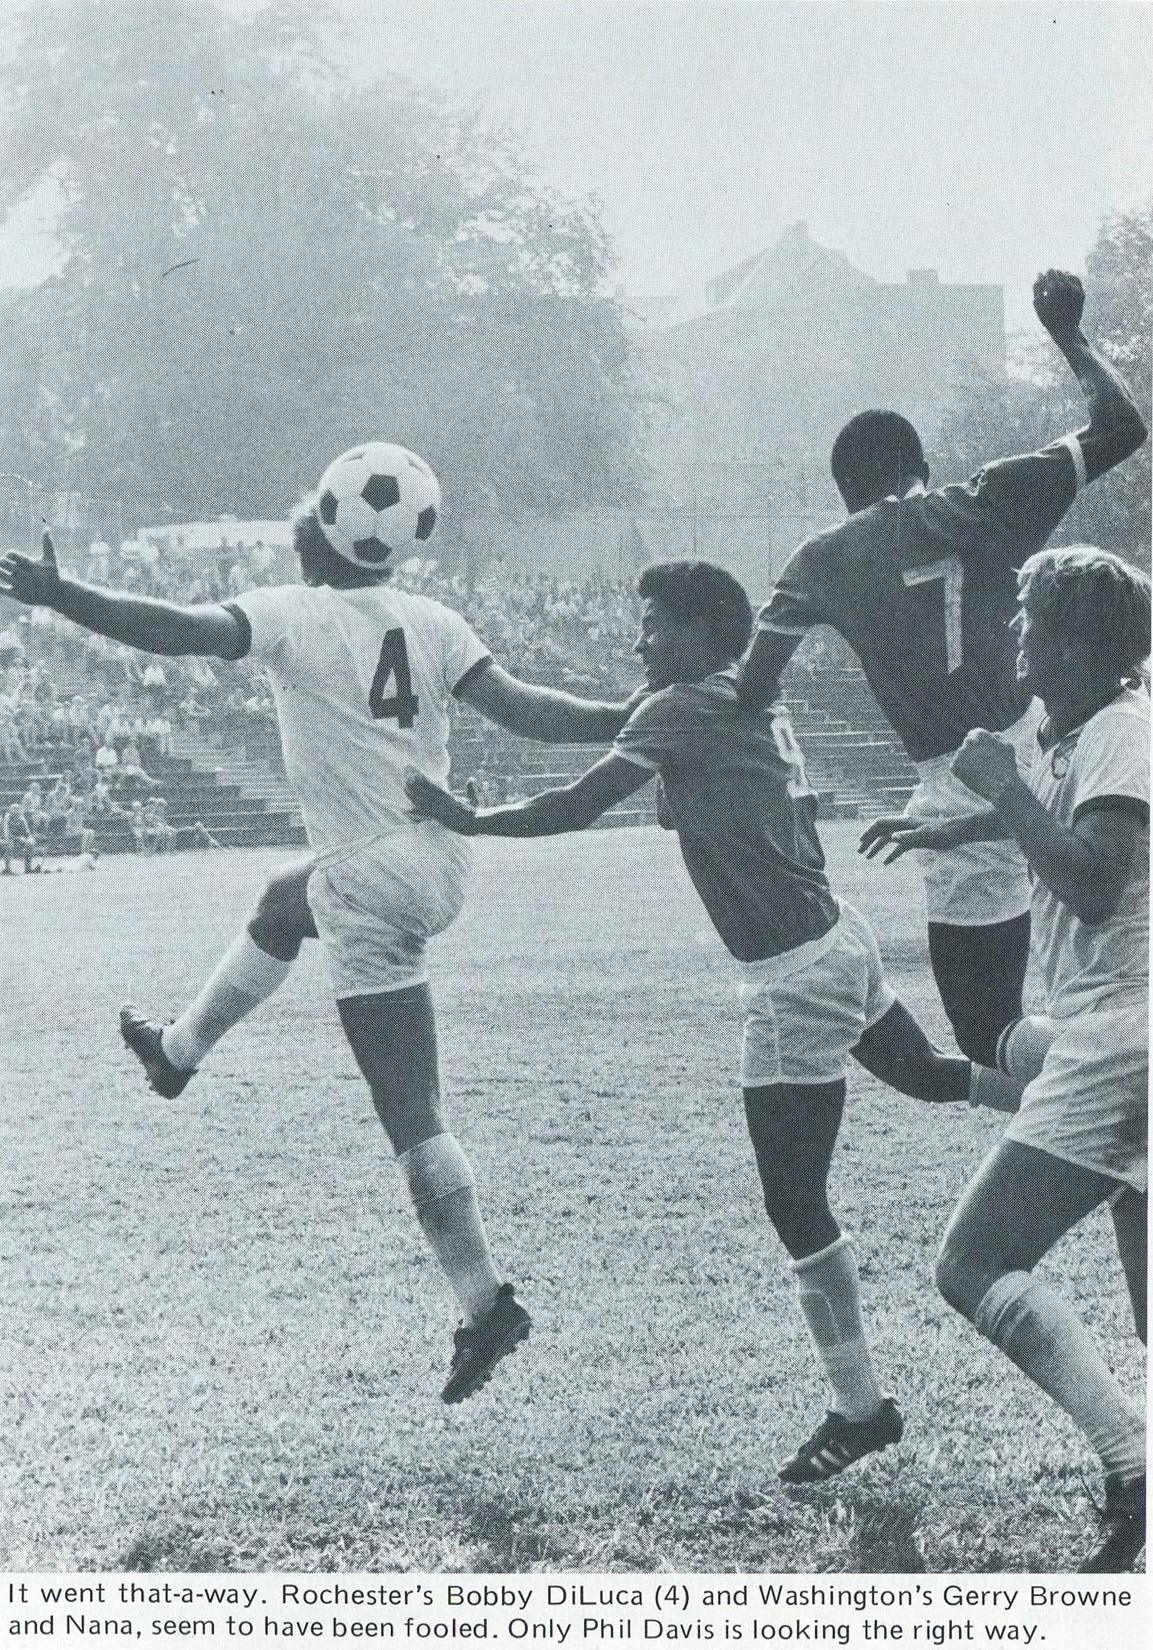 1970 American Soccer League